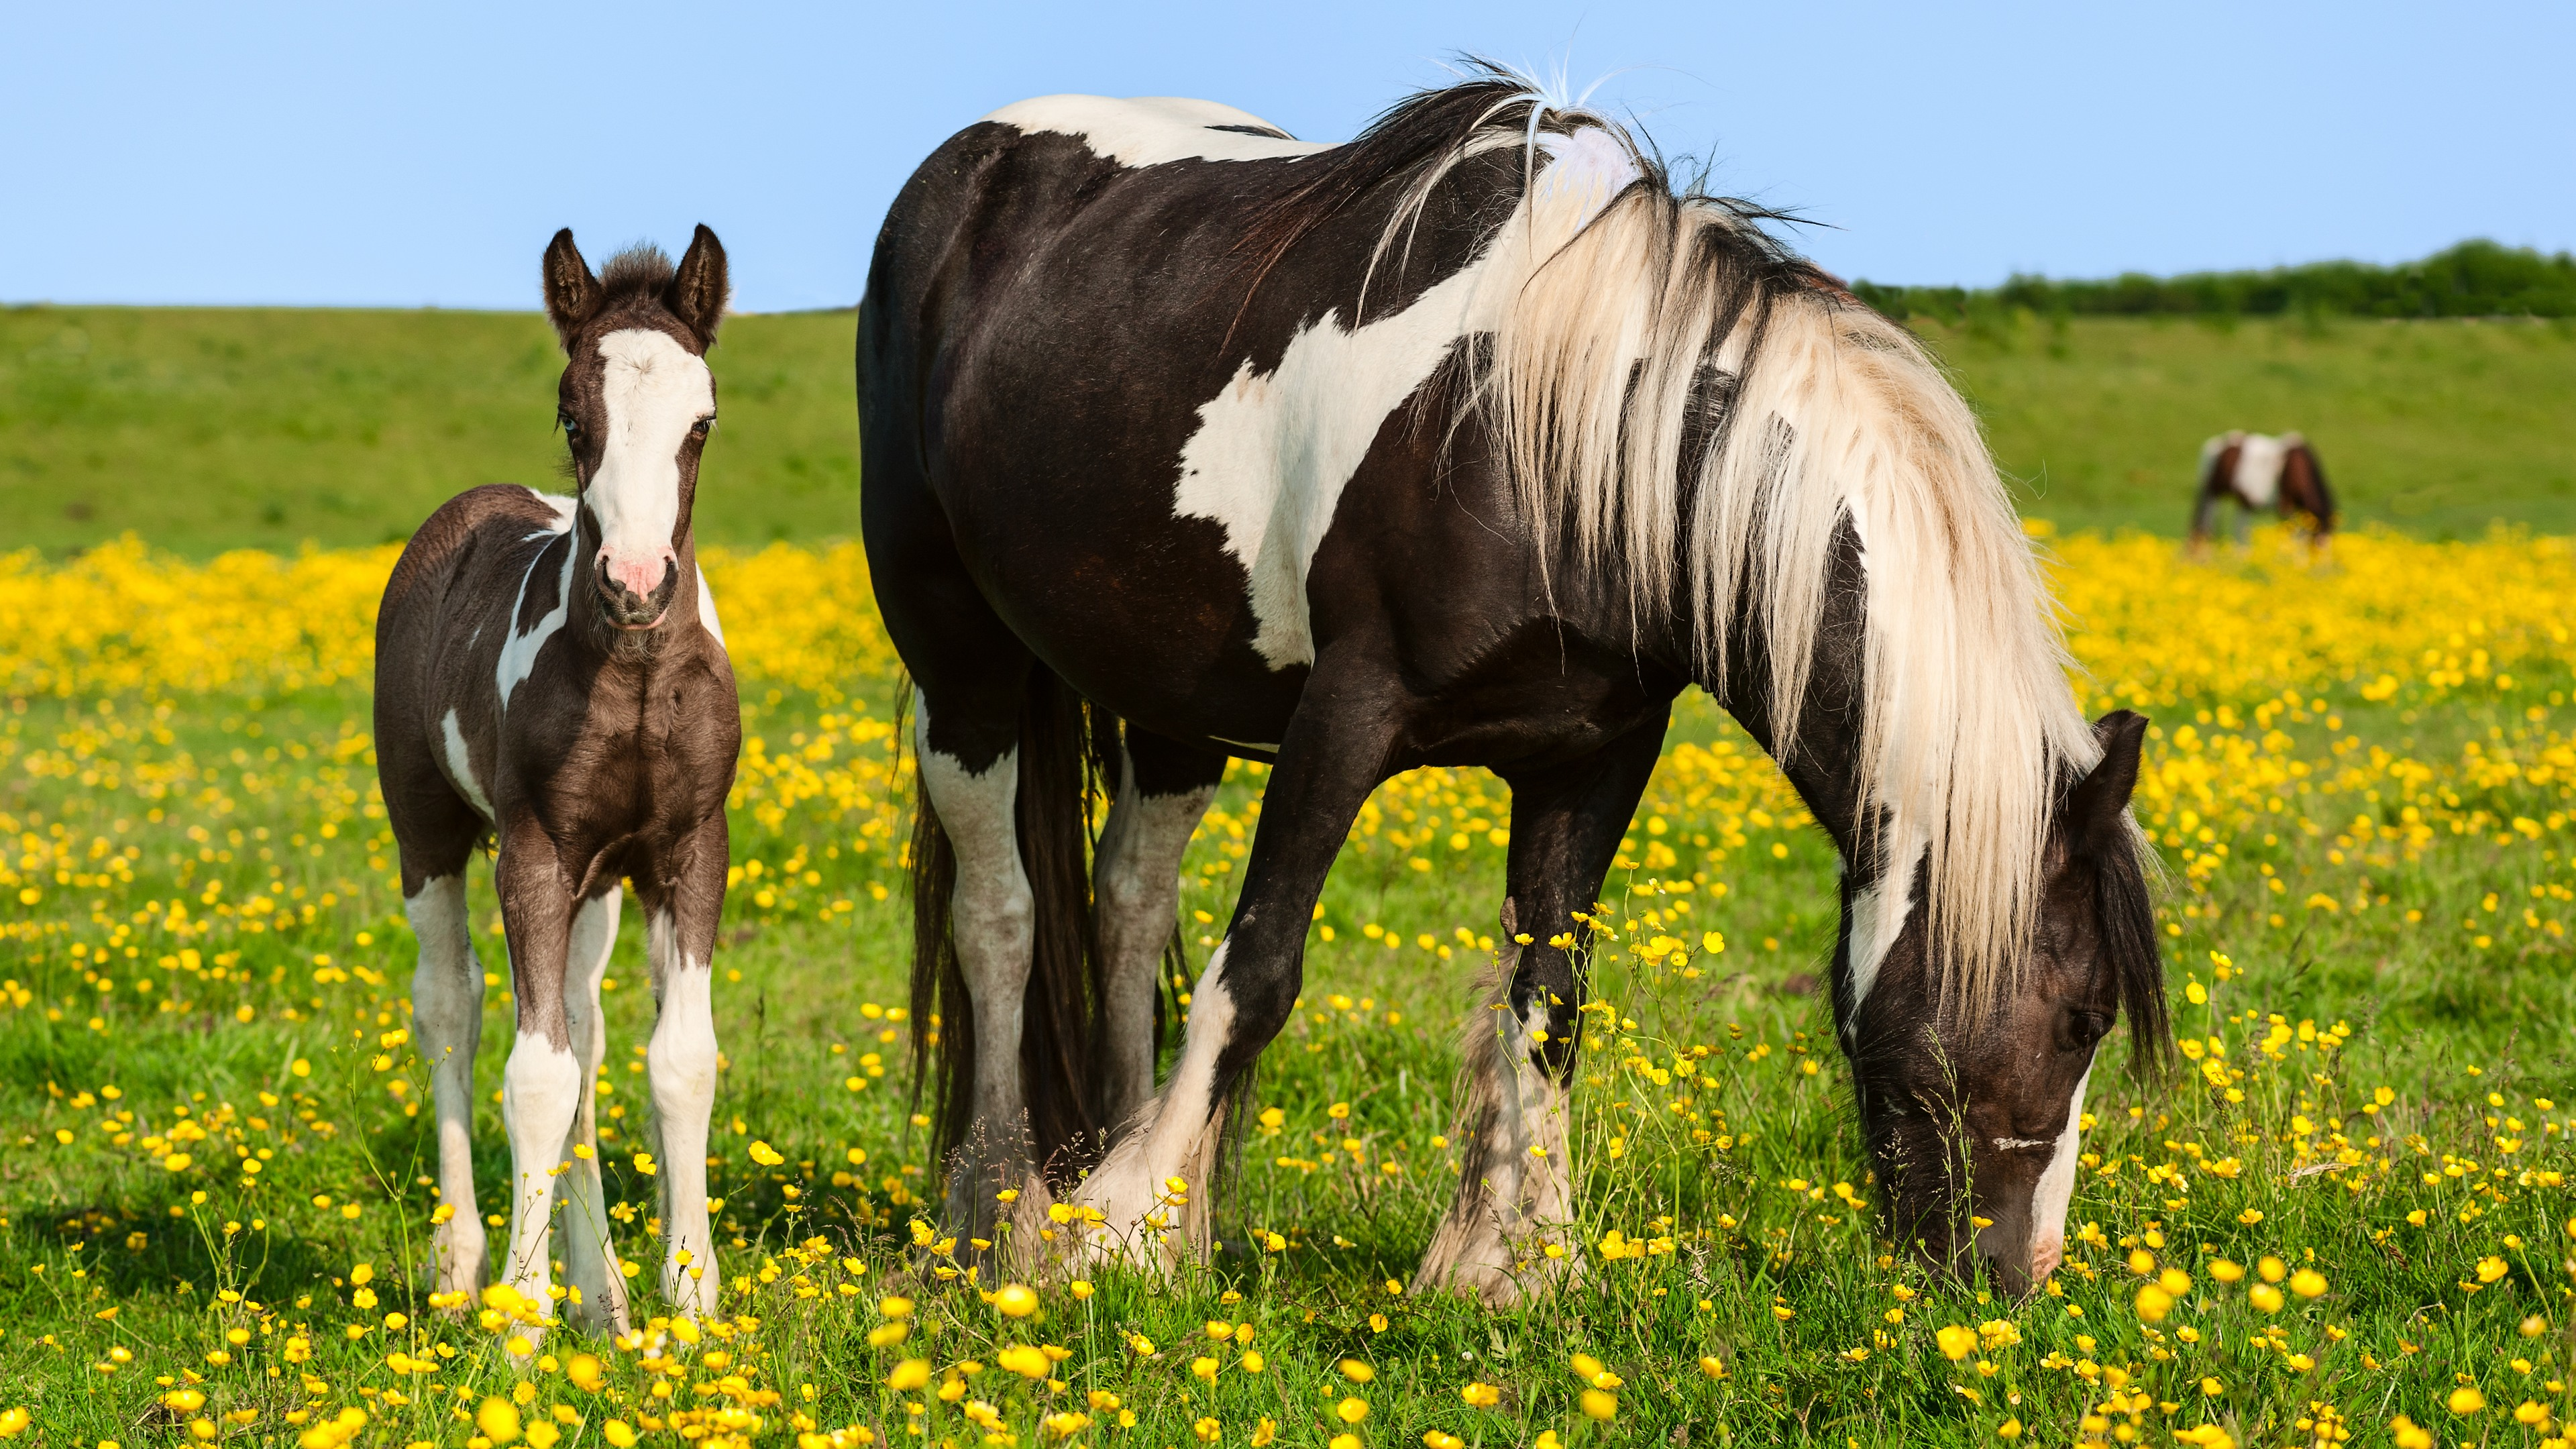 Girls Of The Wilds Wallpaper A Horse With Foal In A Field With Flowers